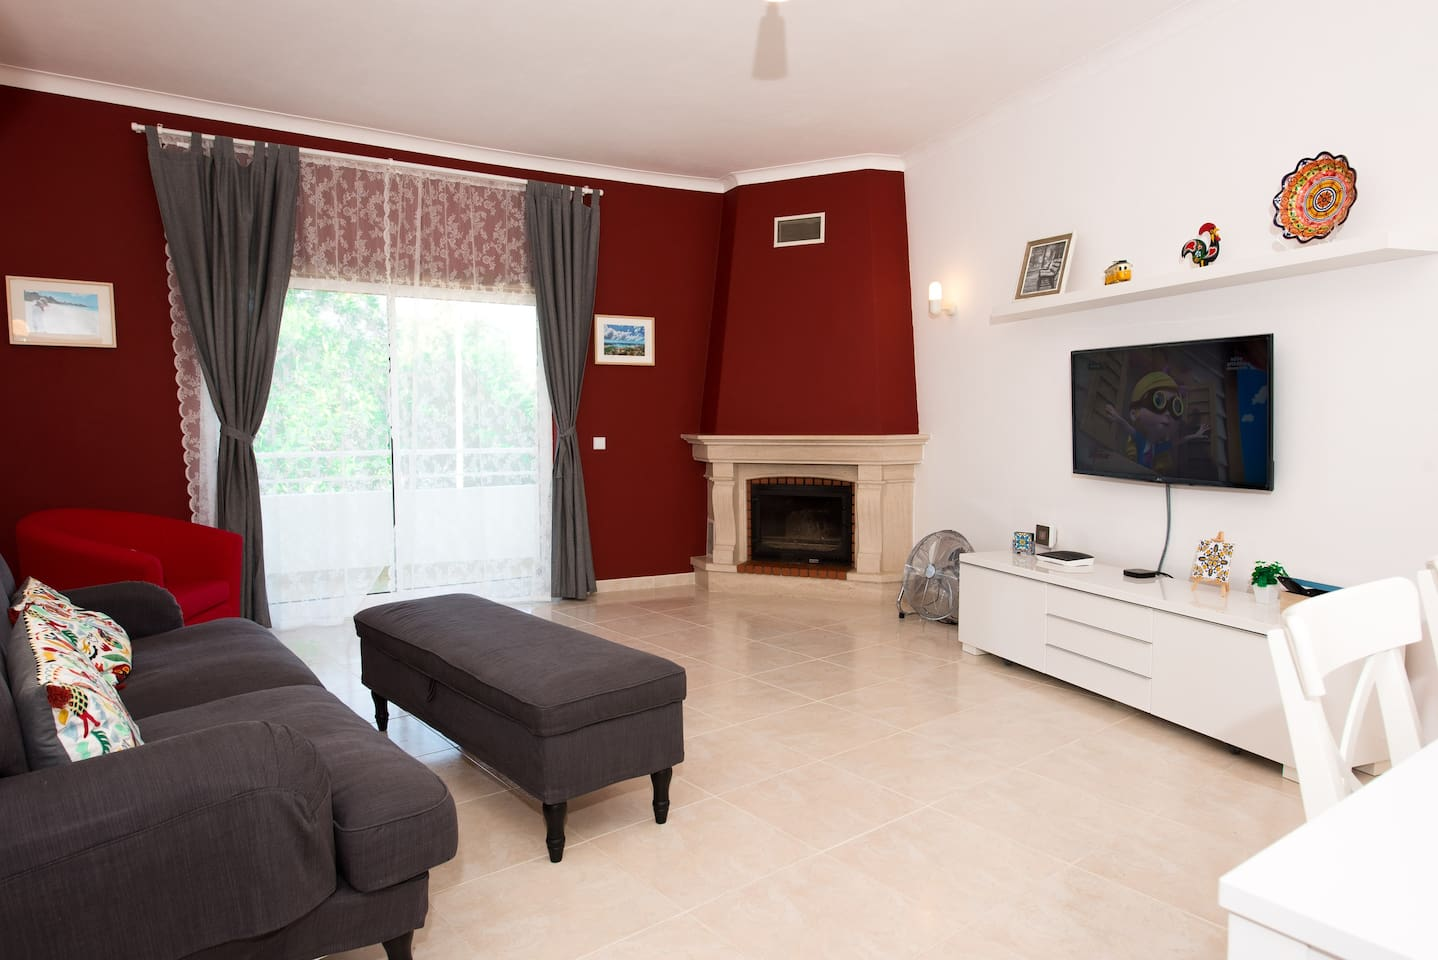 Living Room - A very comfortable environment, spacious, ventilated with plenty of daylight.